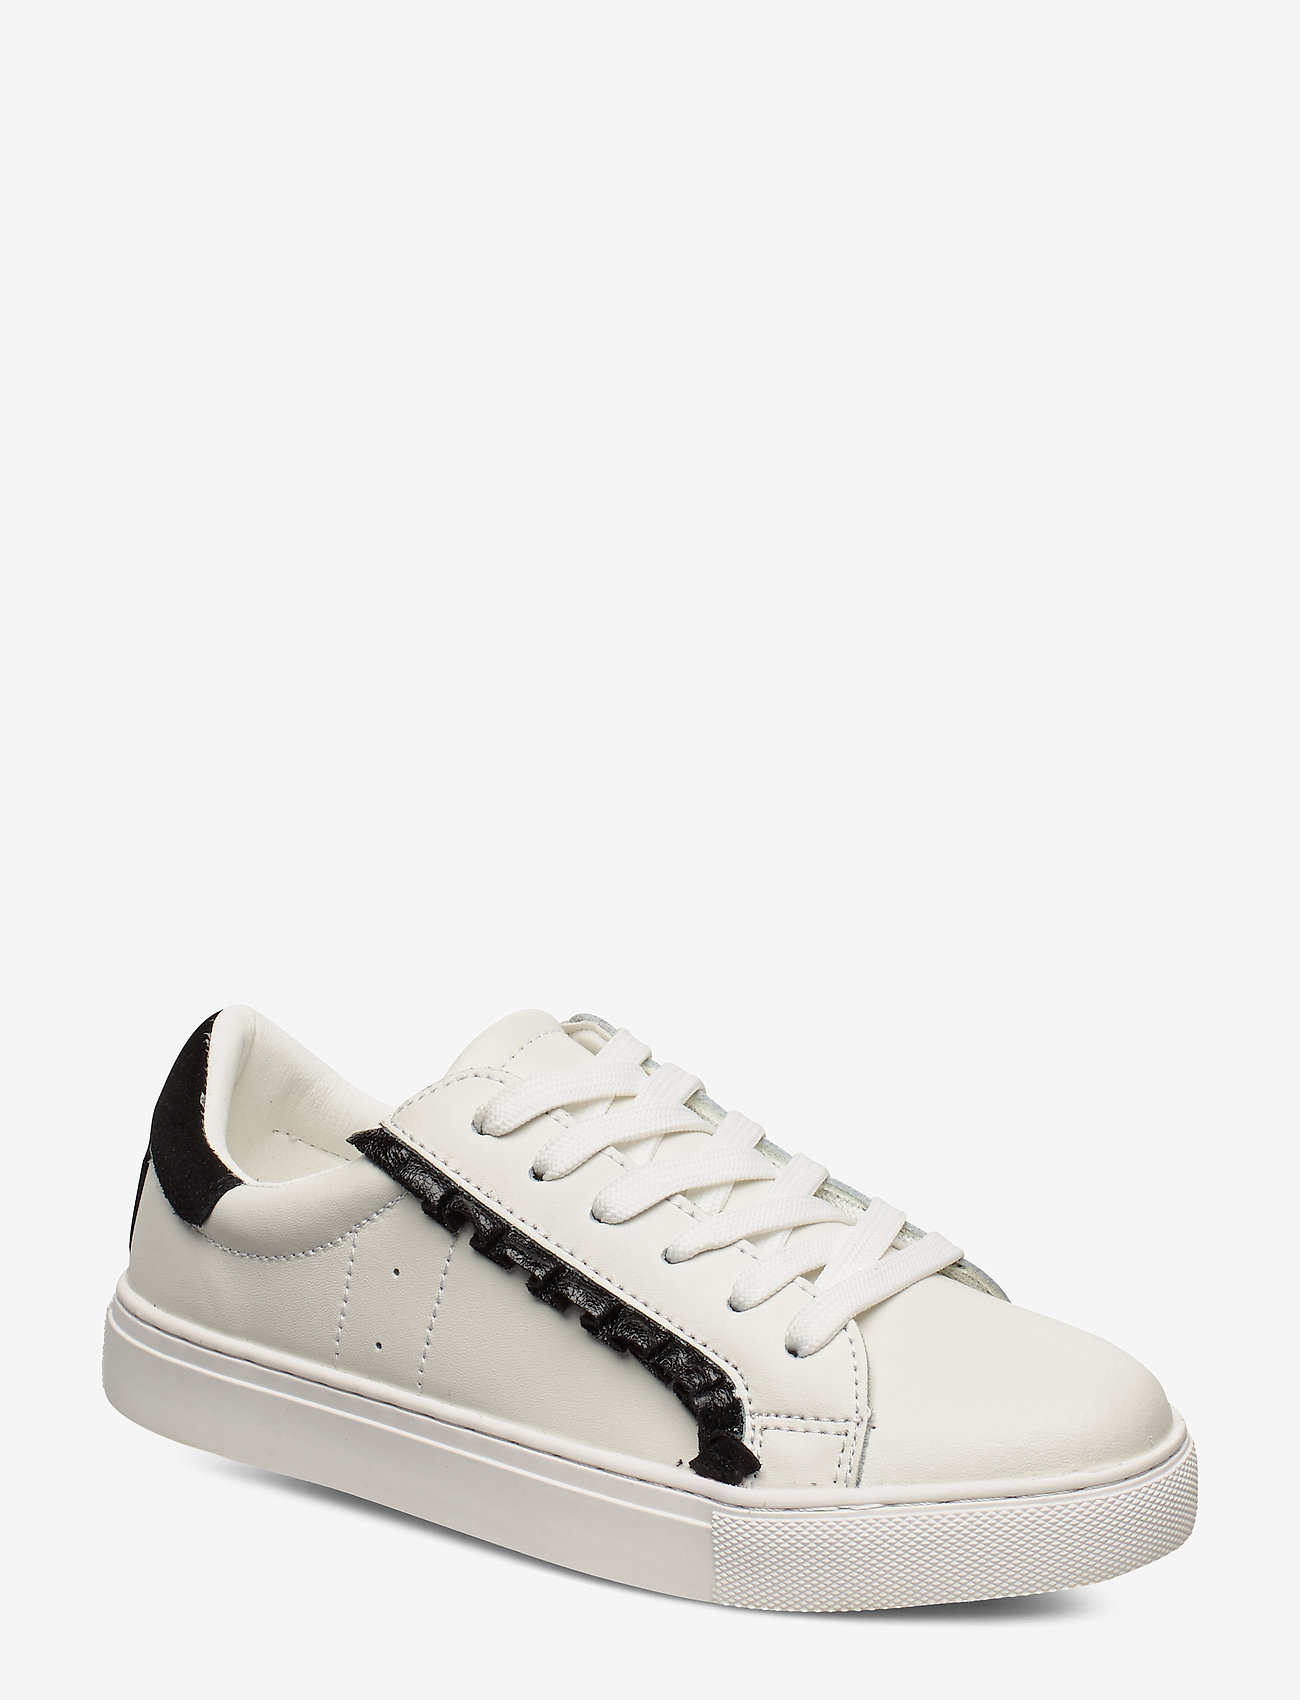 Sofie Schnoor - Shoe - lave sneakers - white black - 0